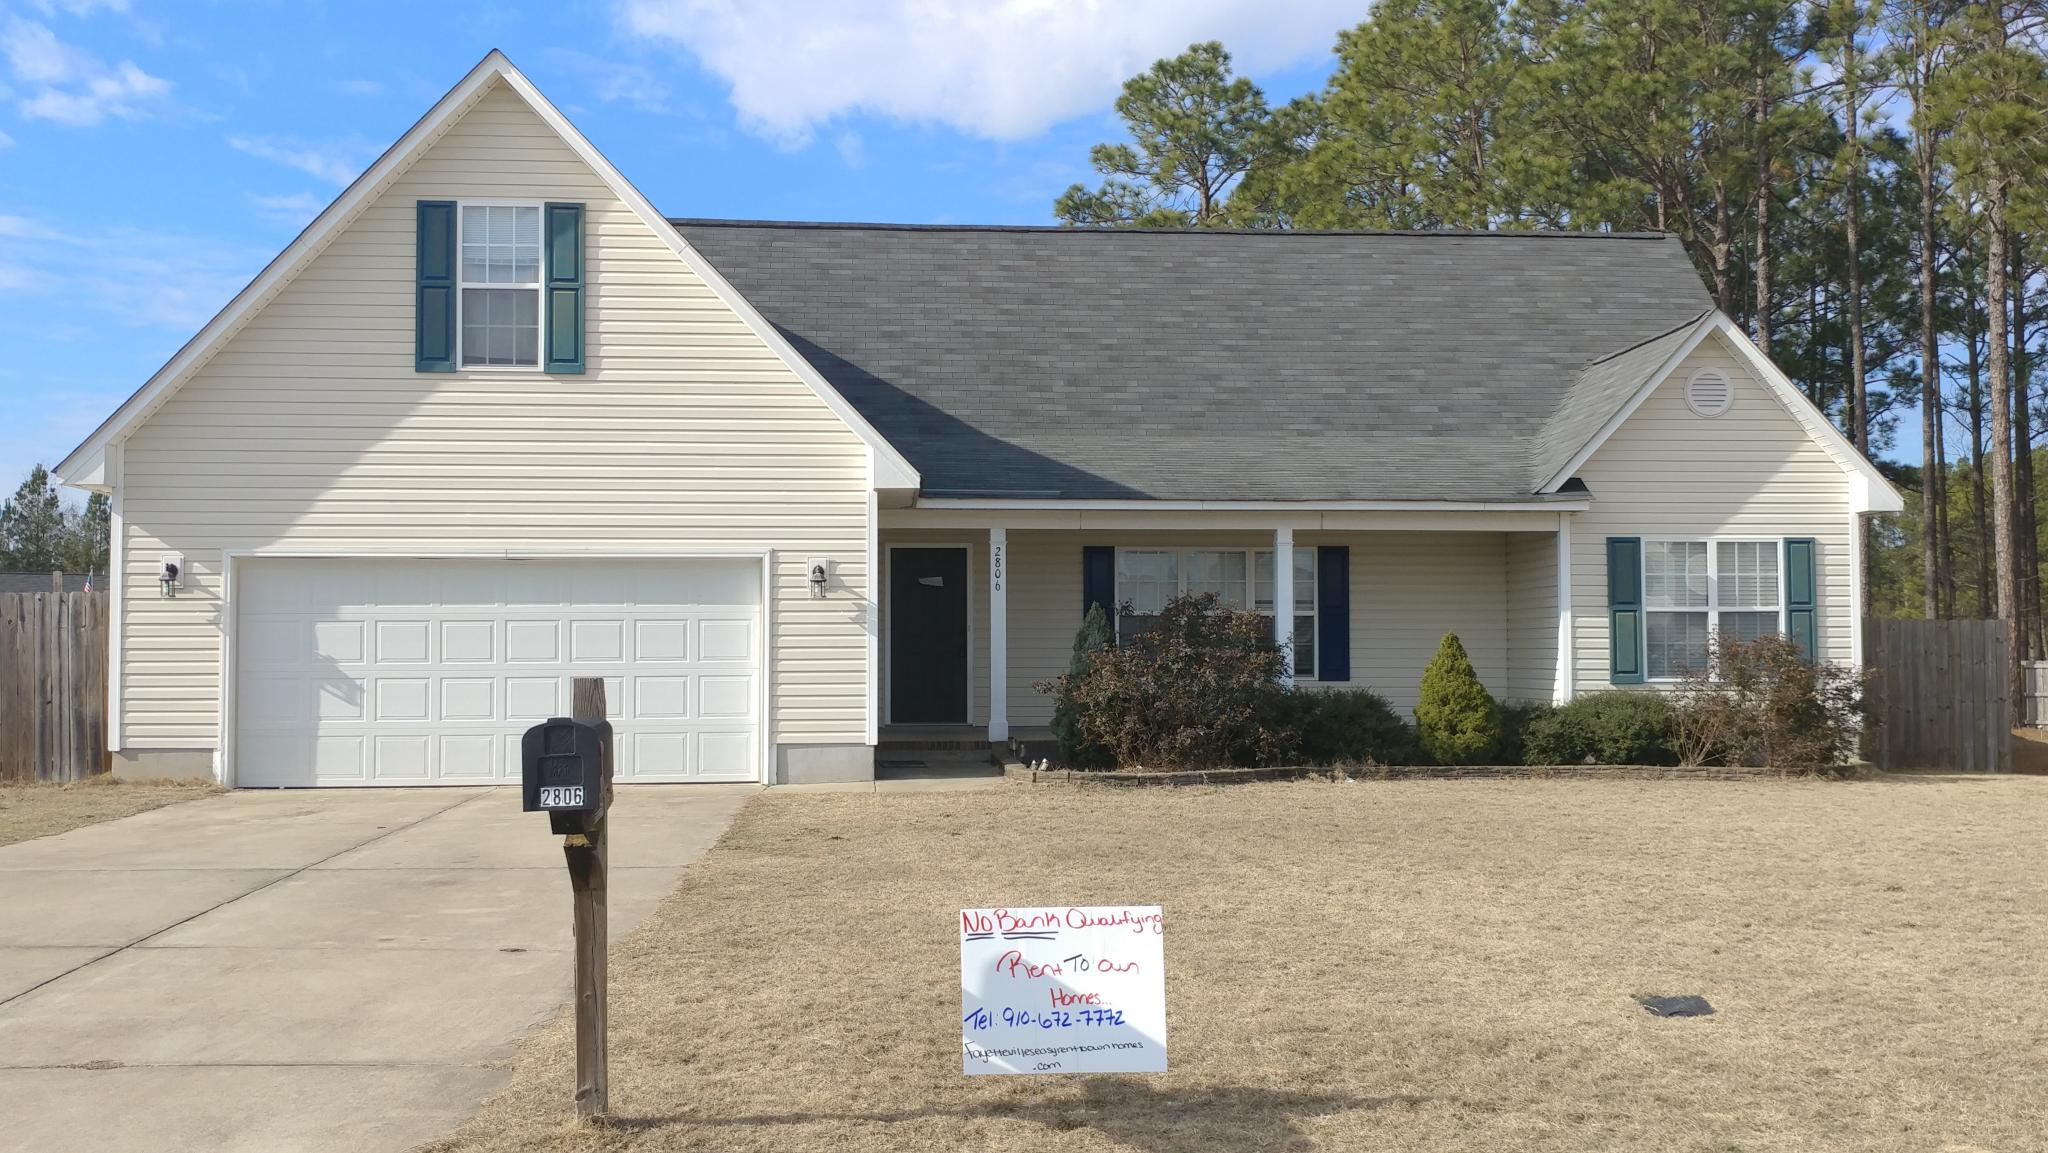 2806 Cambric Dr, Hope Mills, NC 28348 - 3 Bed, 2 Bath Single